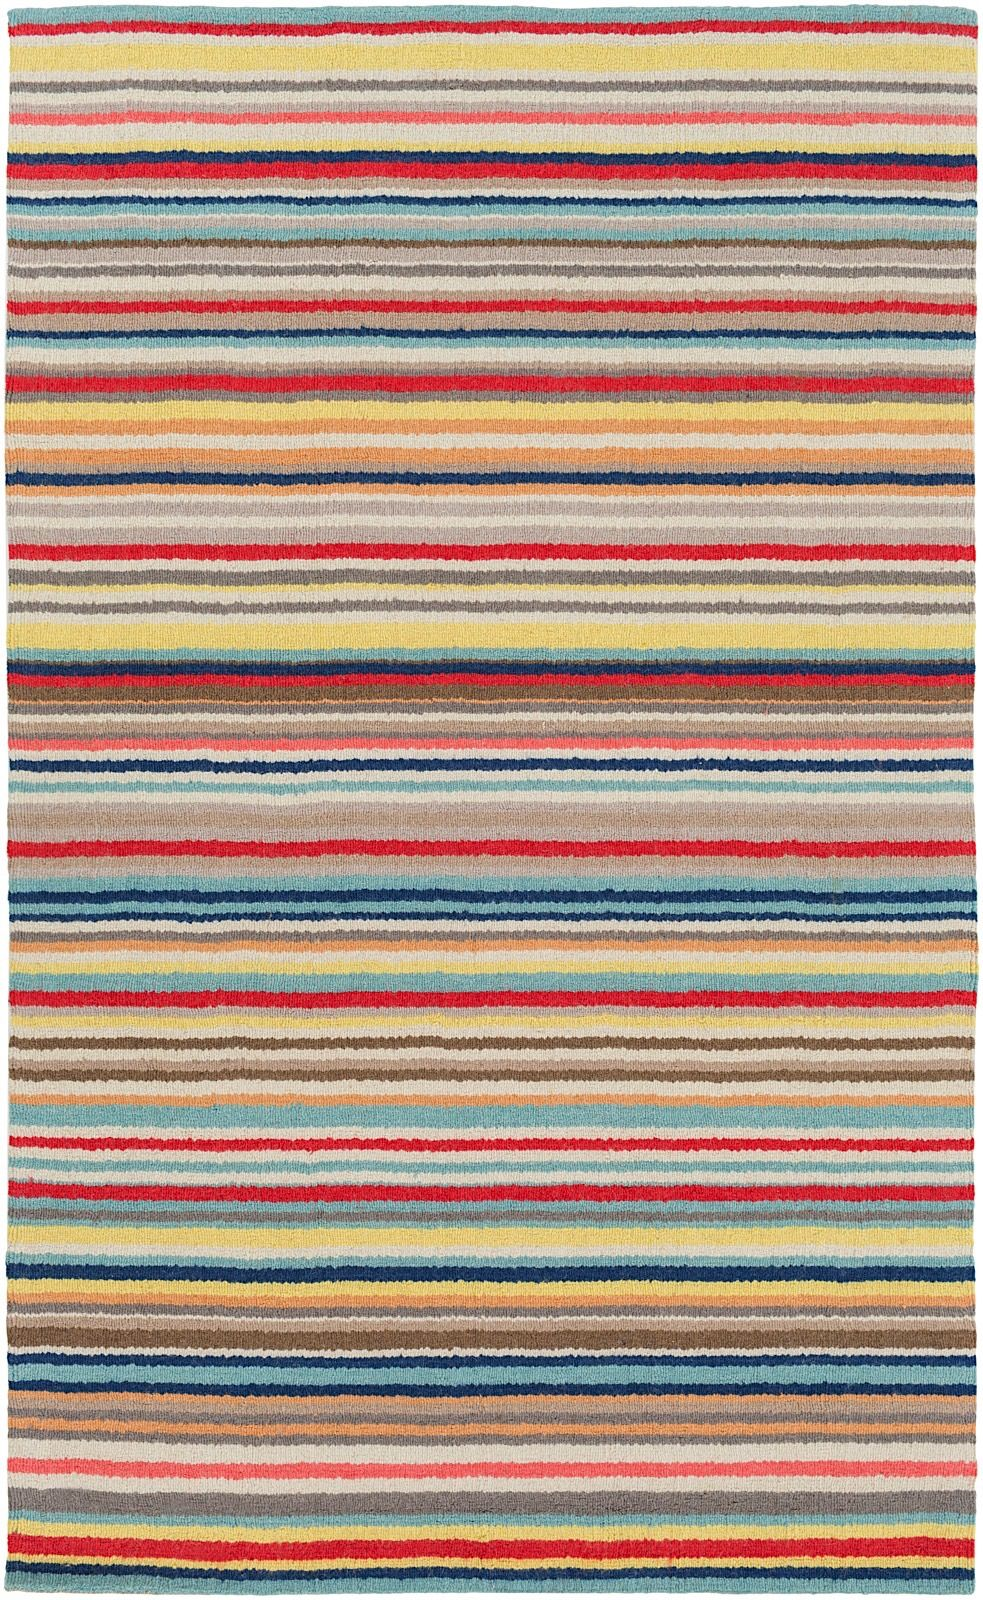 surya shiloh solid/striped area rug collection